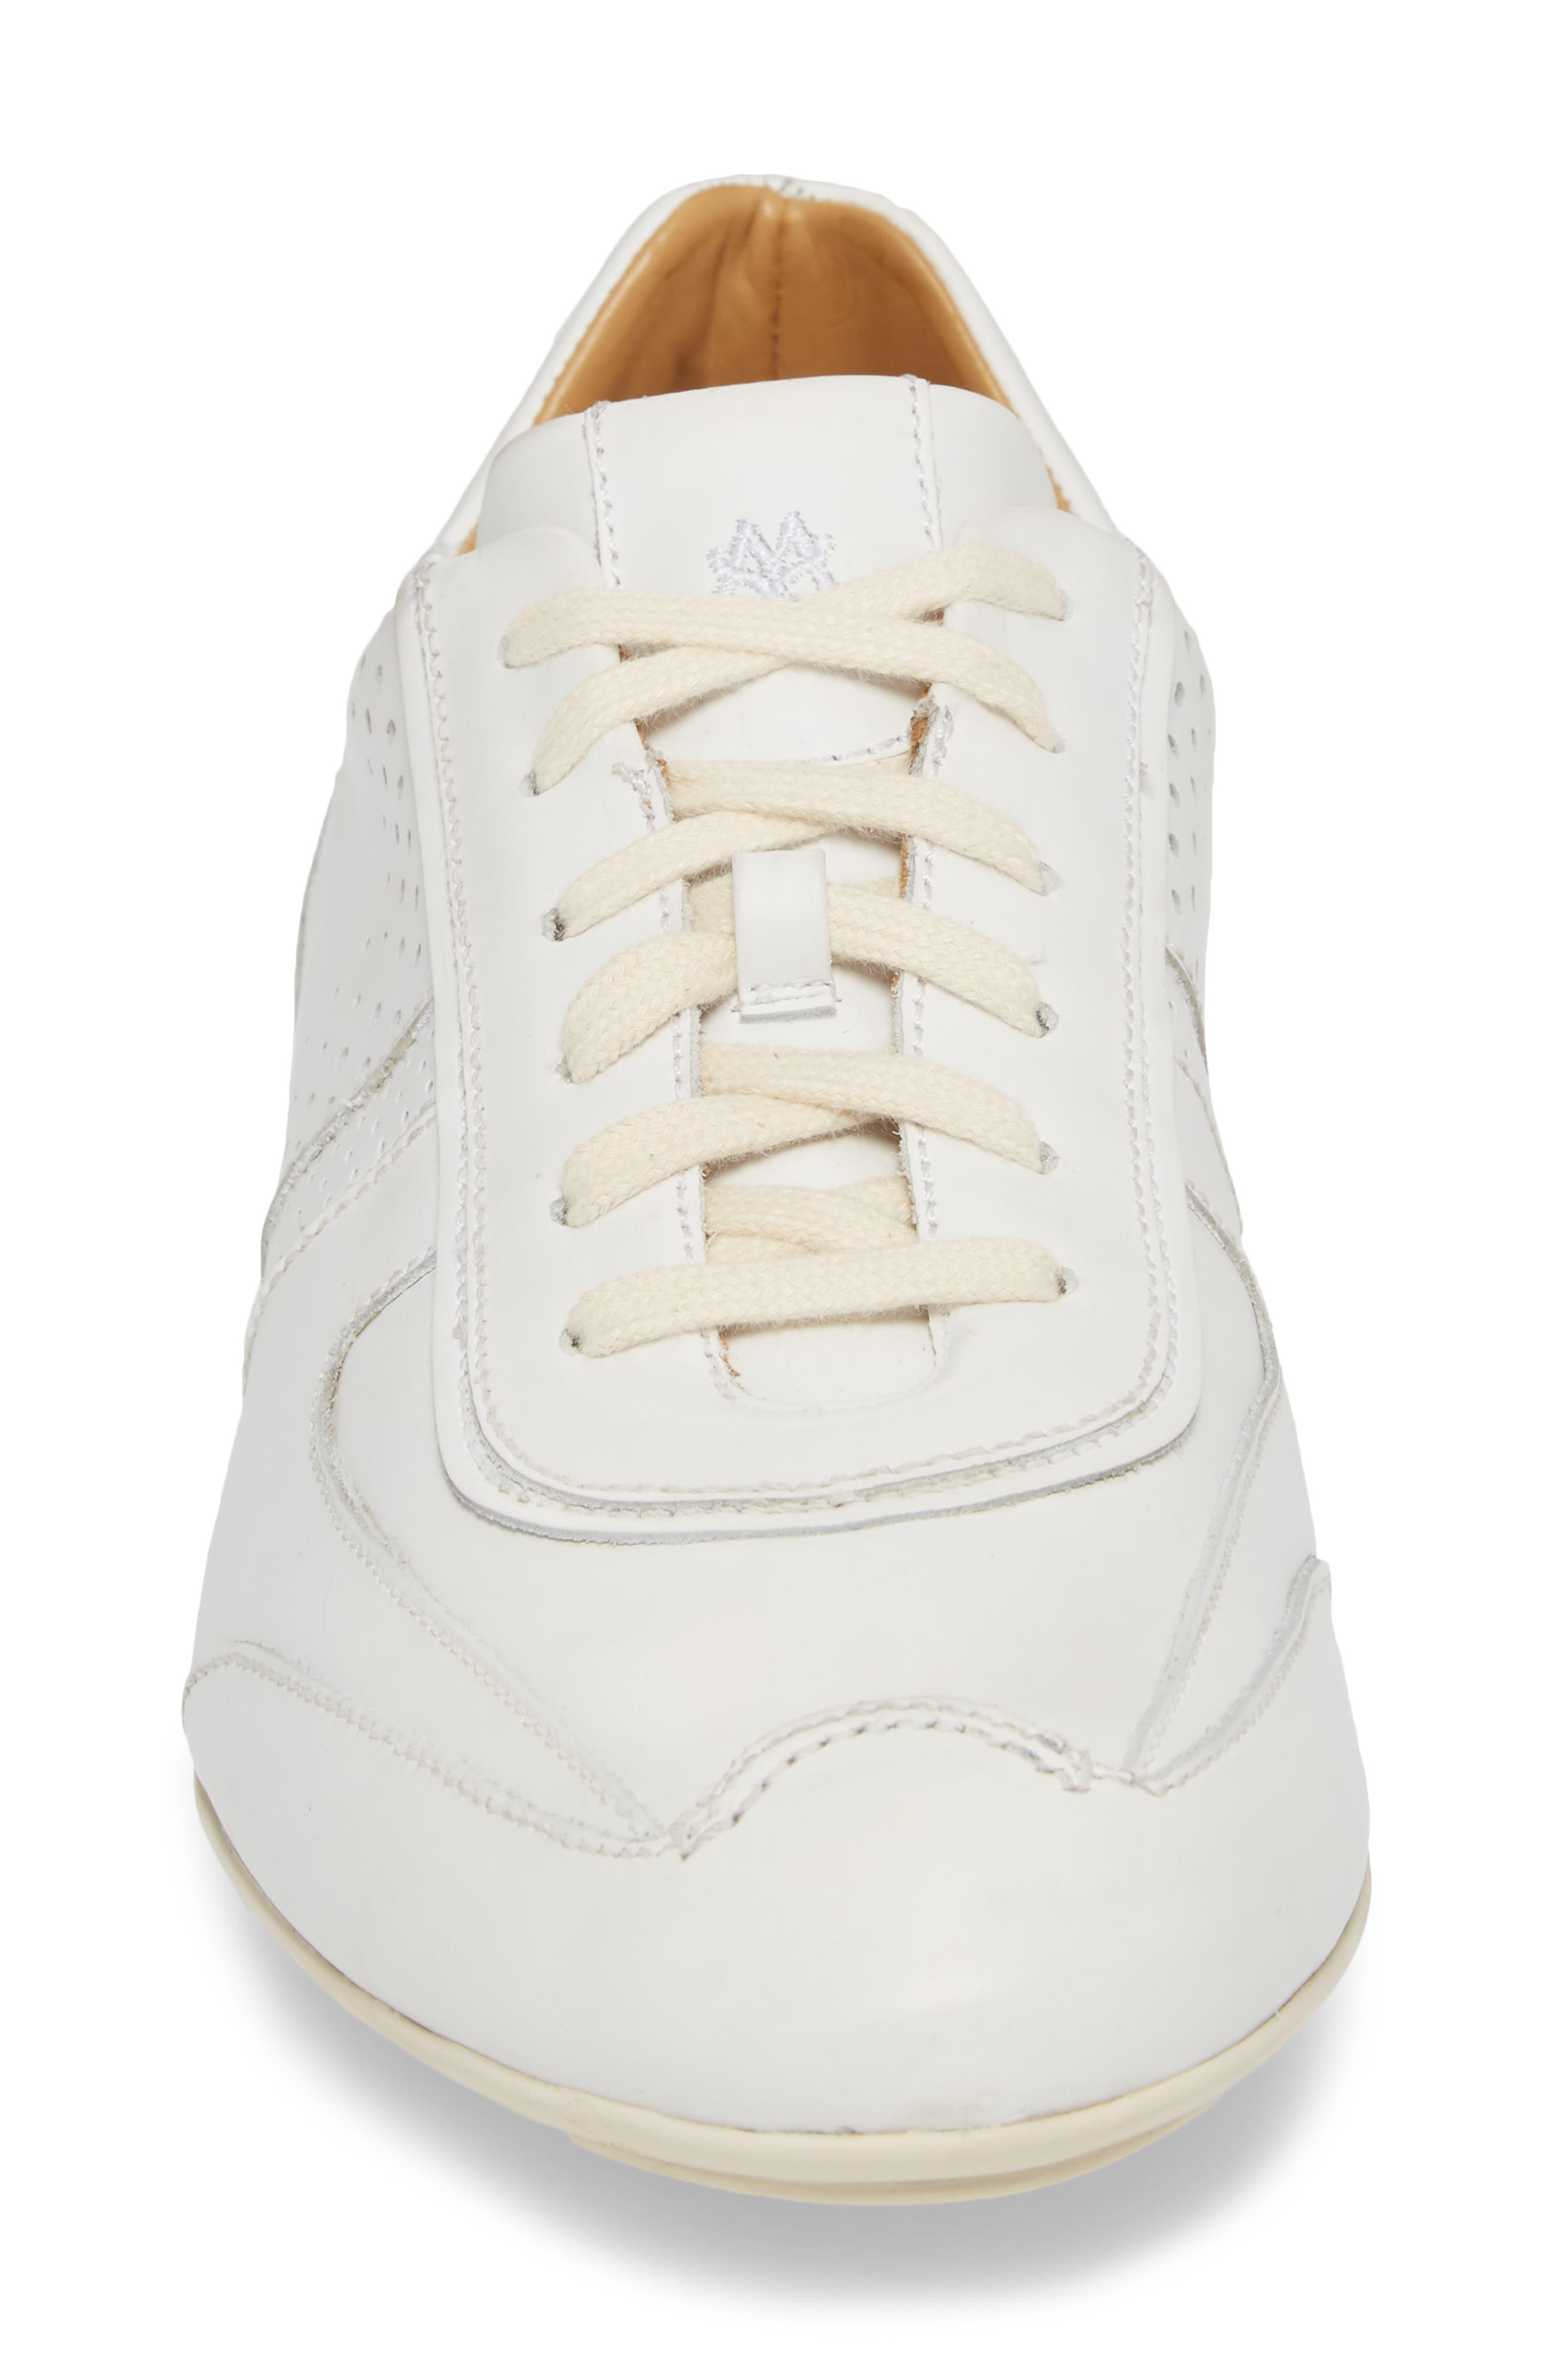 Lozano II Low Top Sneaker,                             Alternate thumbnail 4, color,                             WHITE LEATHER